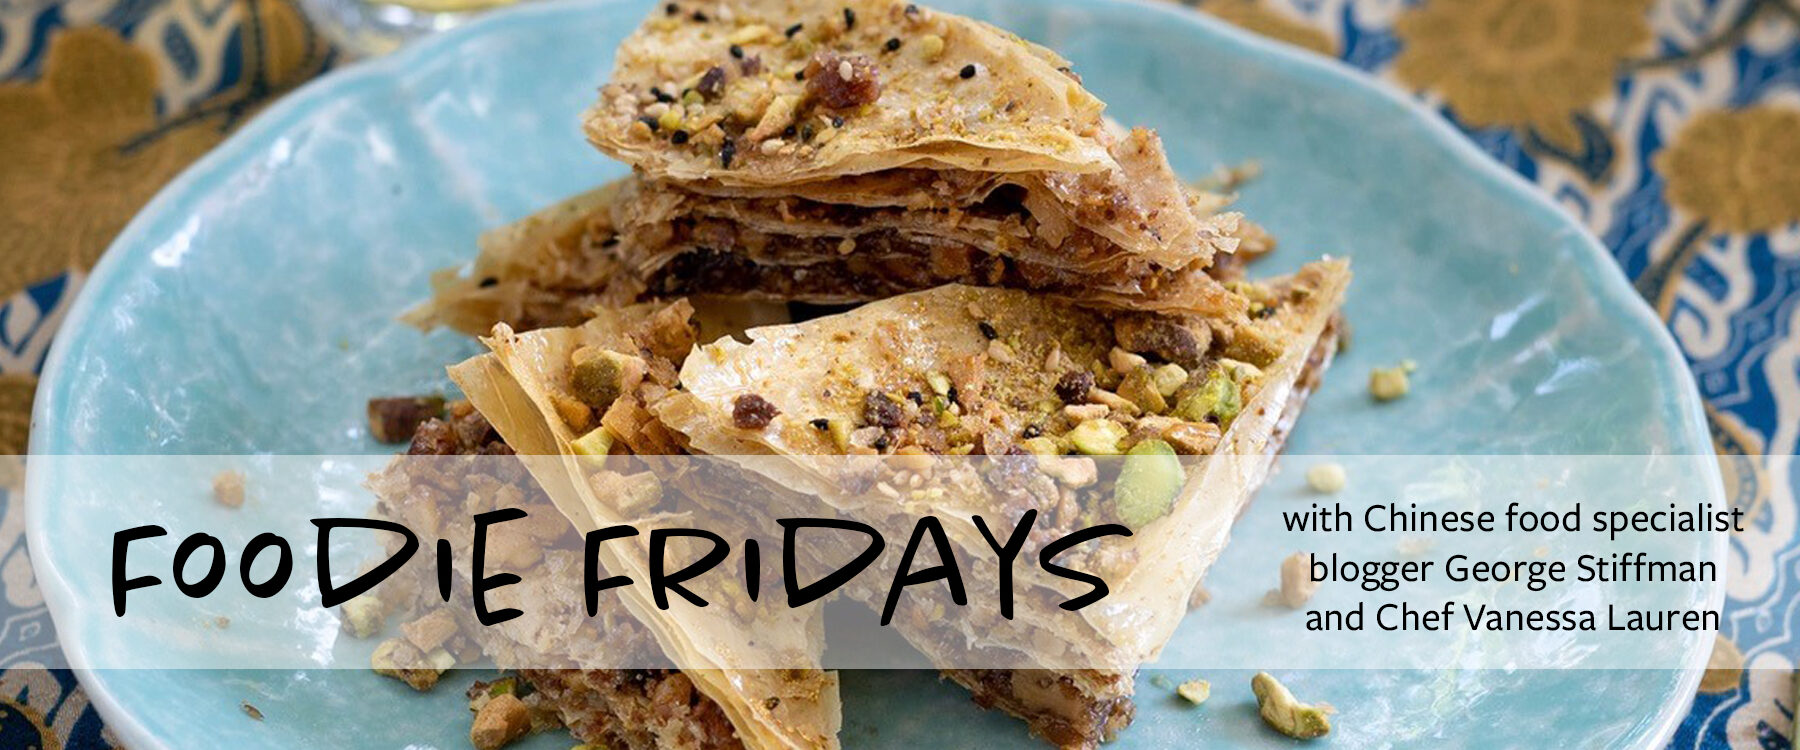 Foodie Fridays over photo of baklava